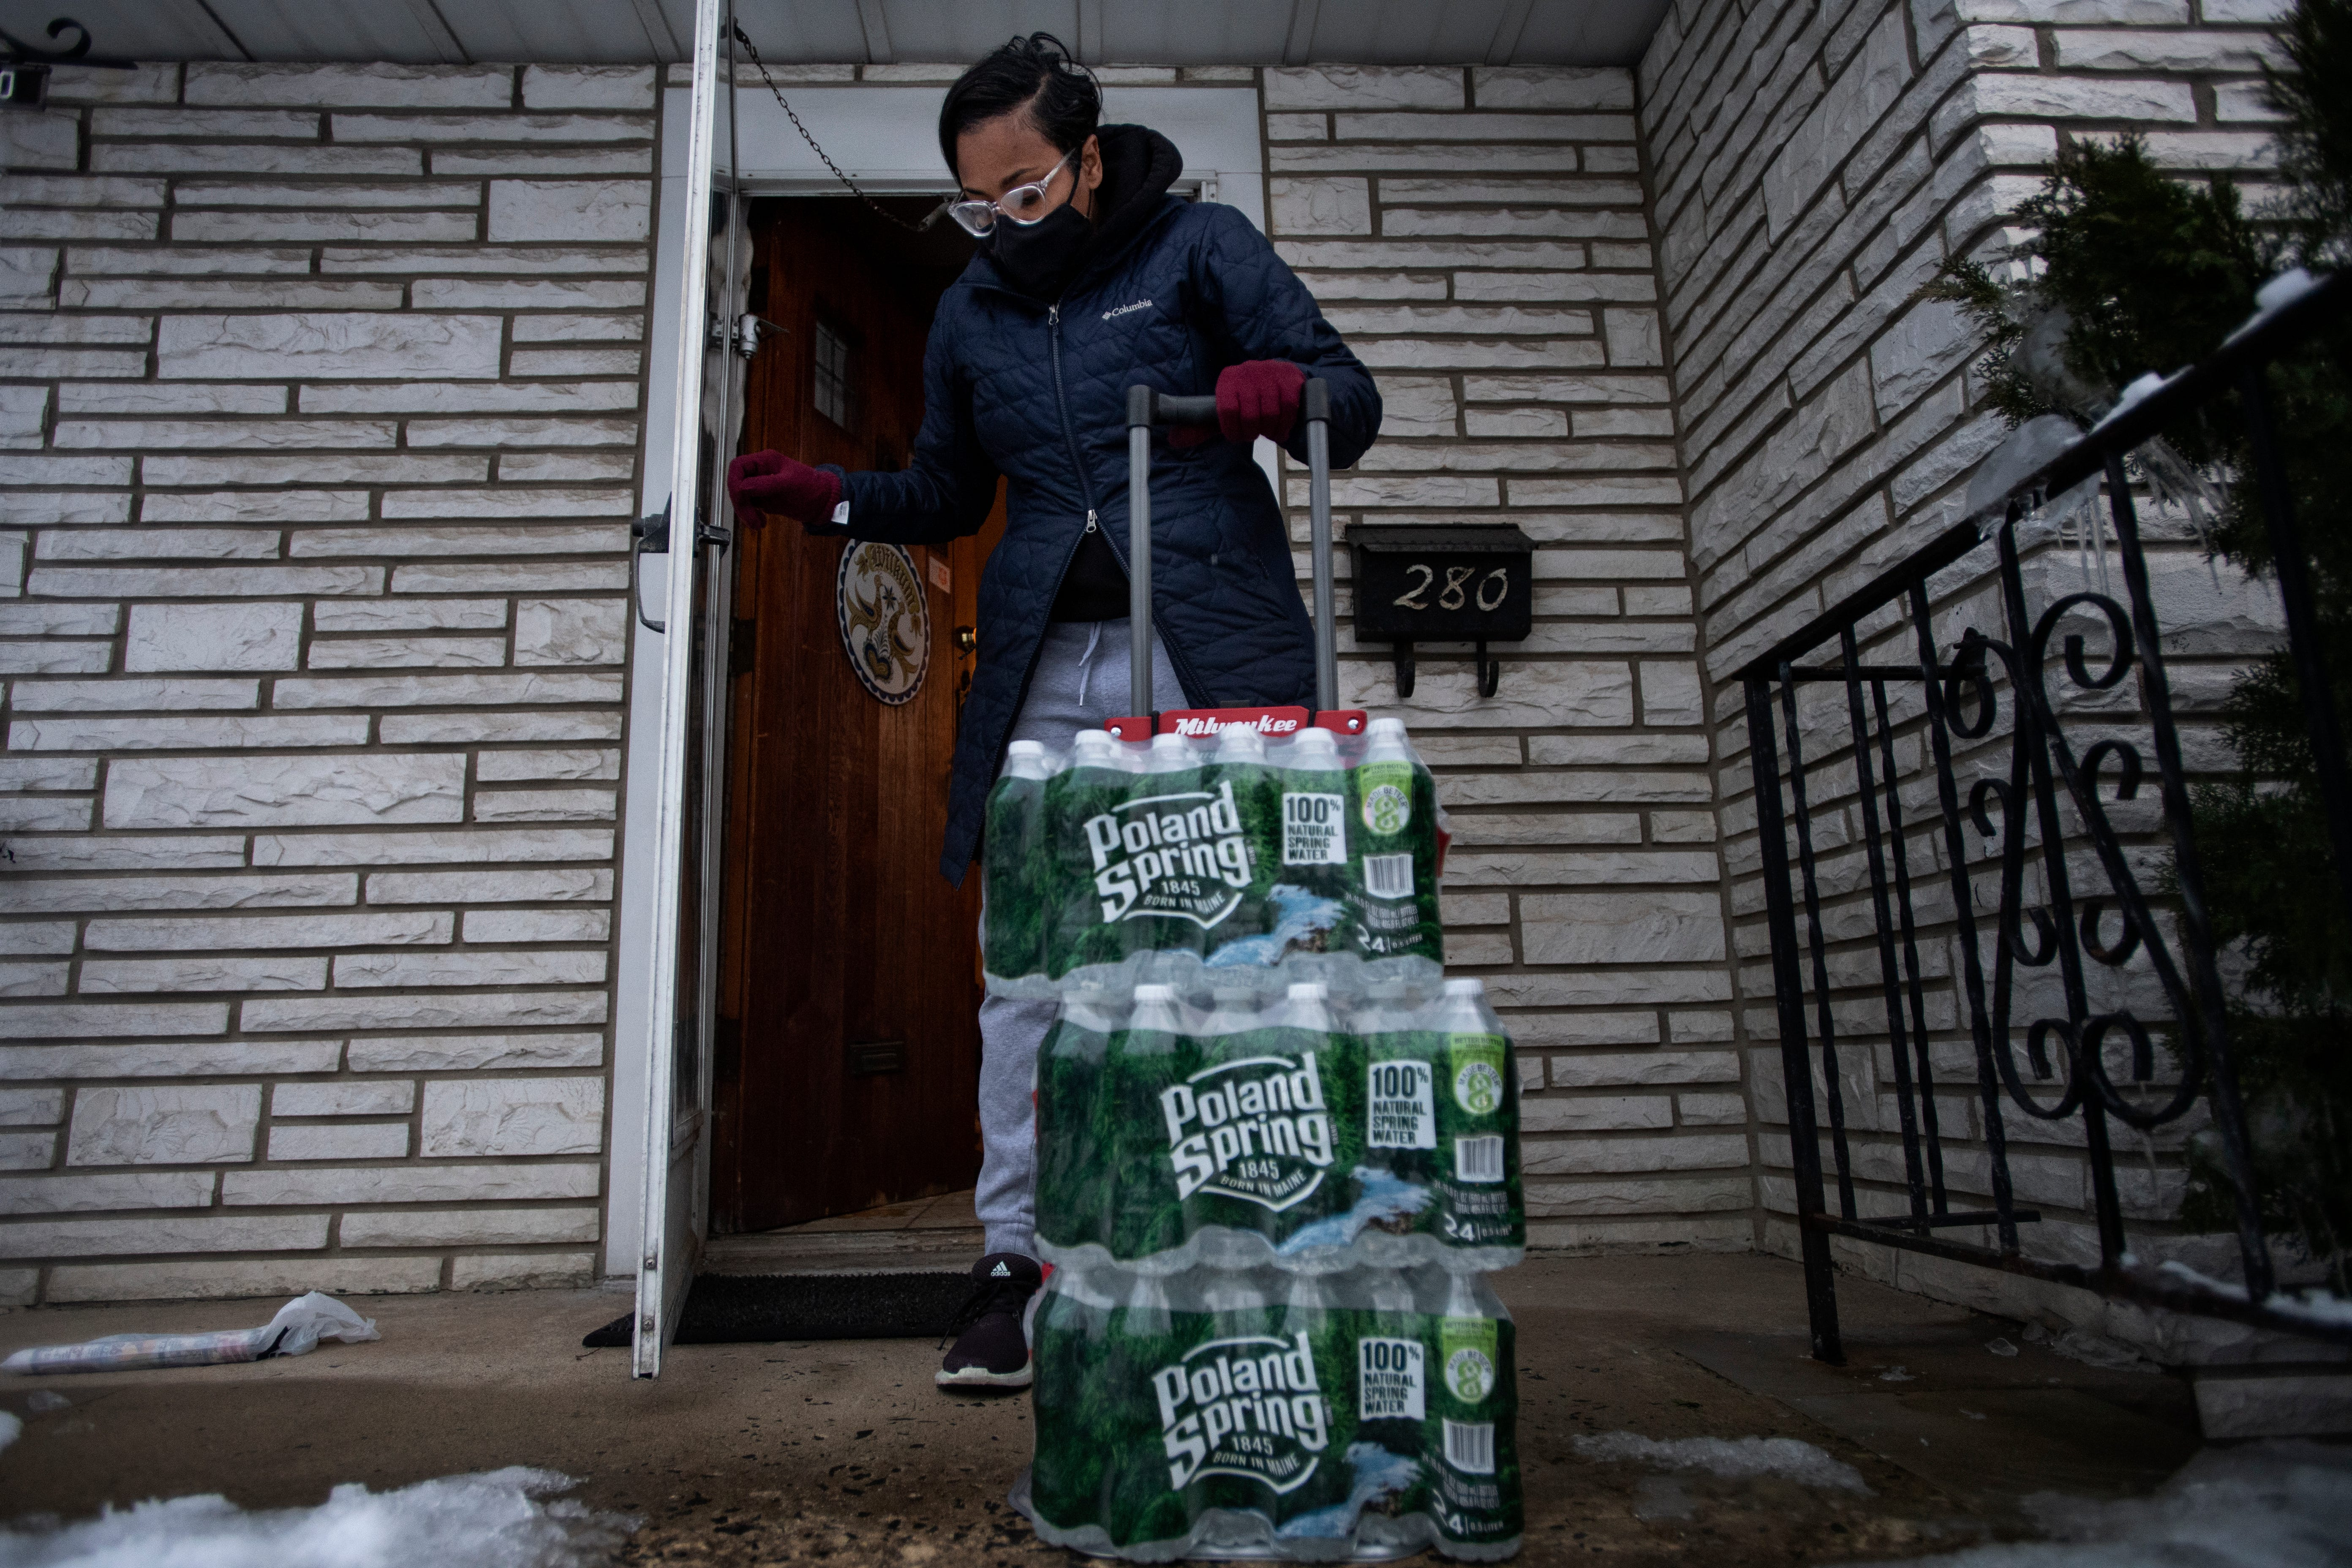 Shakima Thomas, of Newark, brings bottled water into her home on Thursday, February 11, 2021. Thomas became an activist for clean water after learning her son Bryce, 6, had lead in his blood. Thomas does not drink or cook with water from the faucets at her home because testing has shown lead in the water.